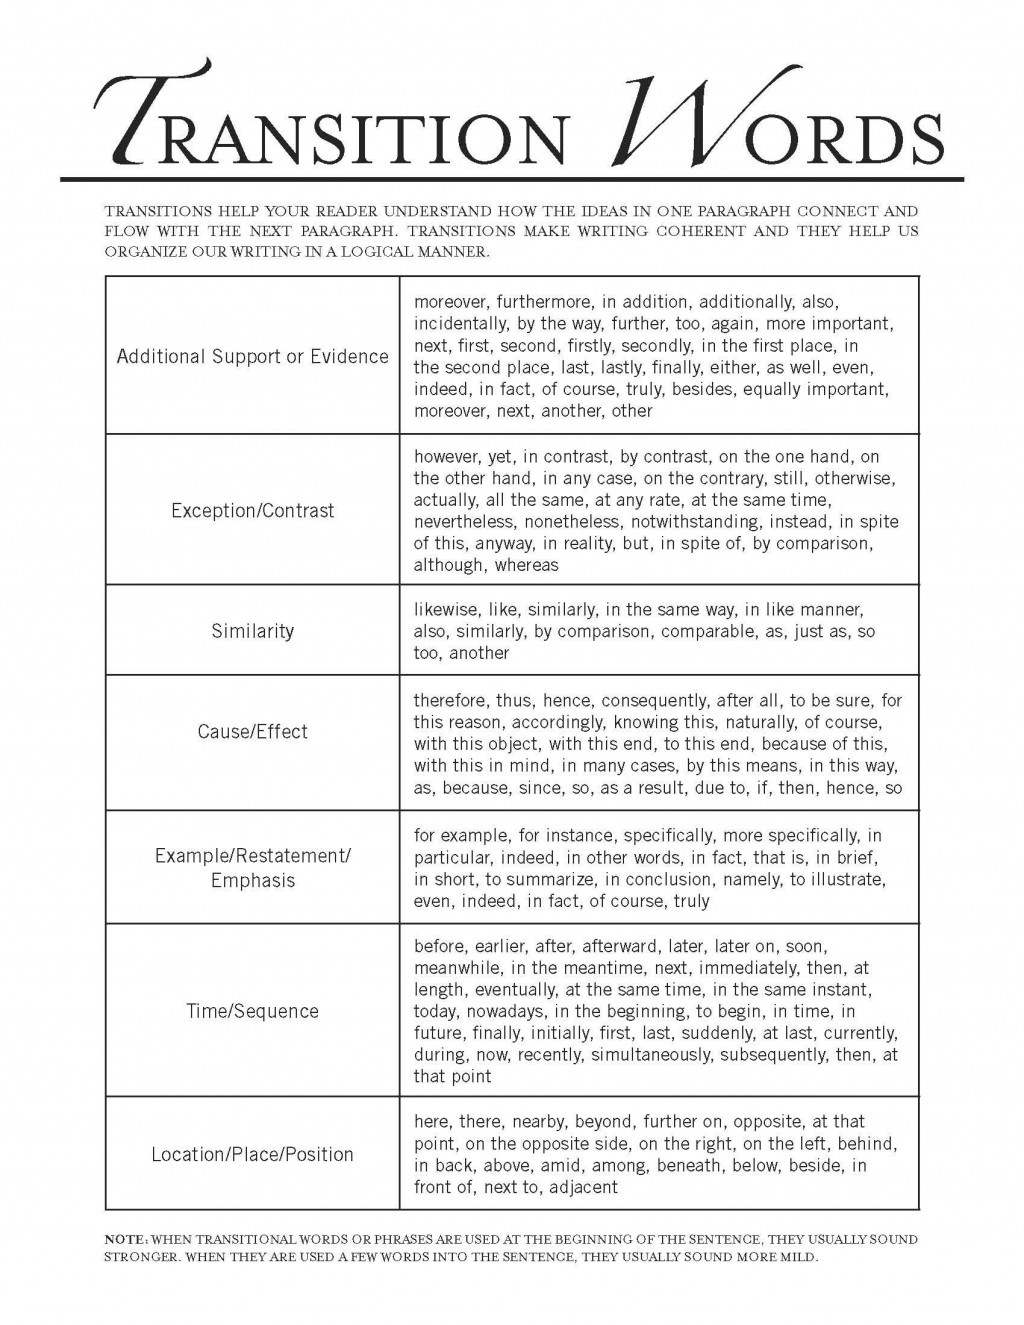 002 Essay Example Transition Words For Essays Rare Paragraph Pdf In Spanish 4th Grade Large